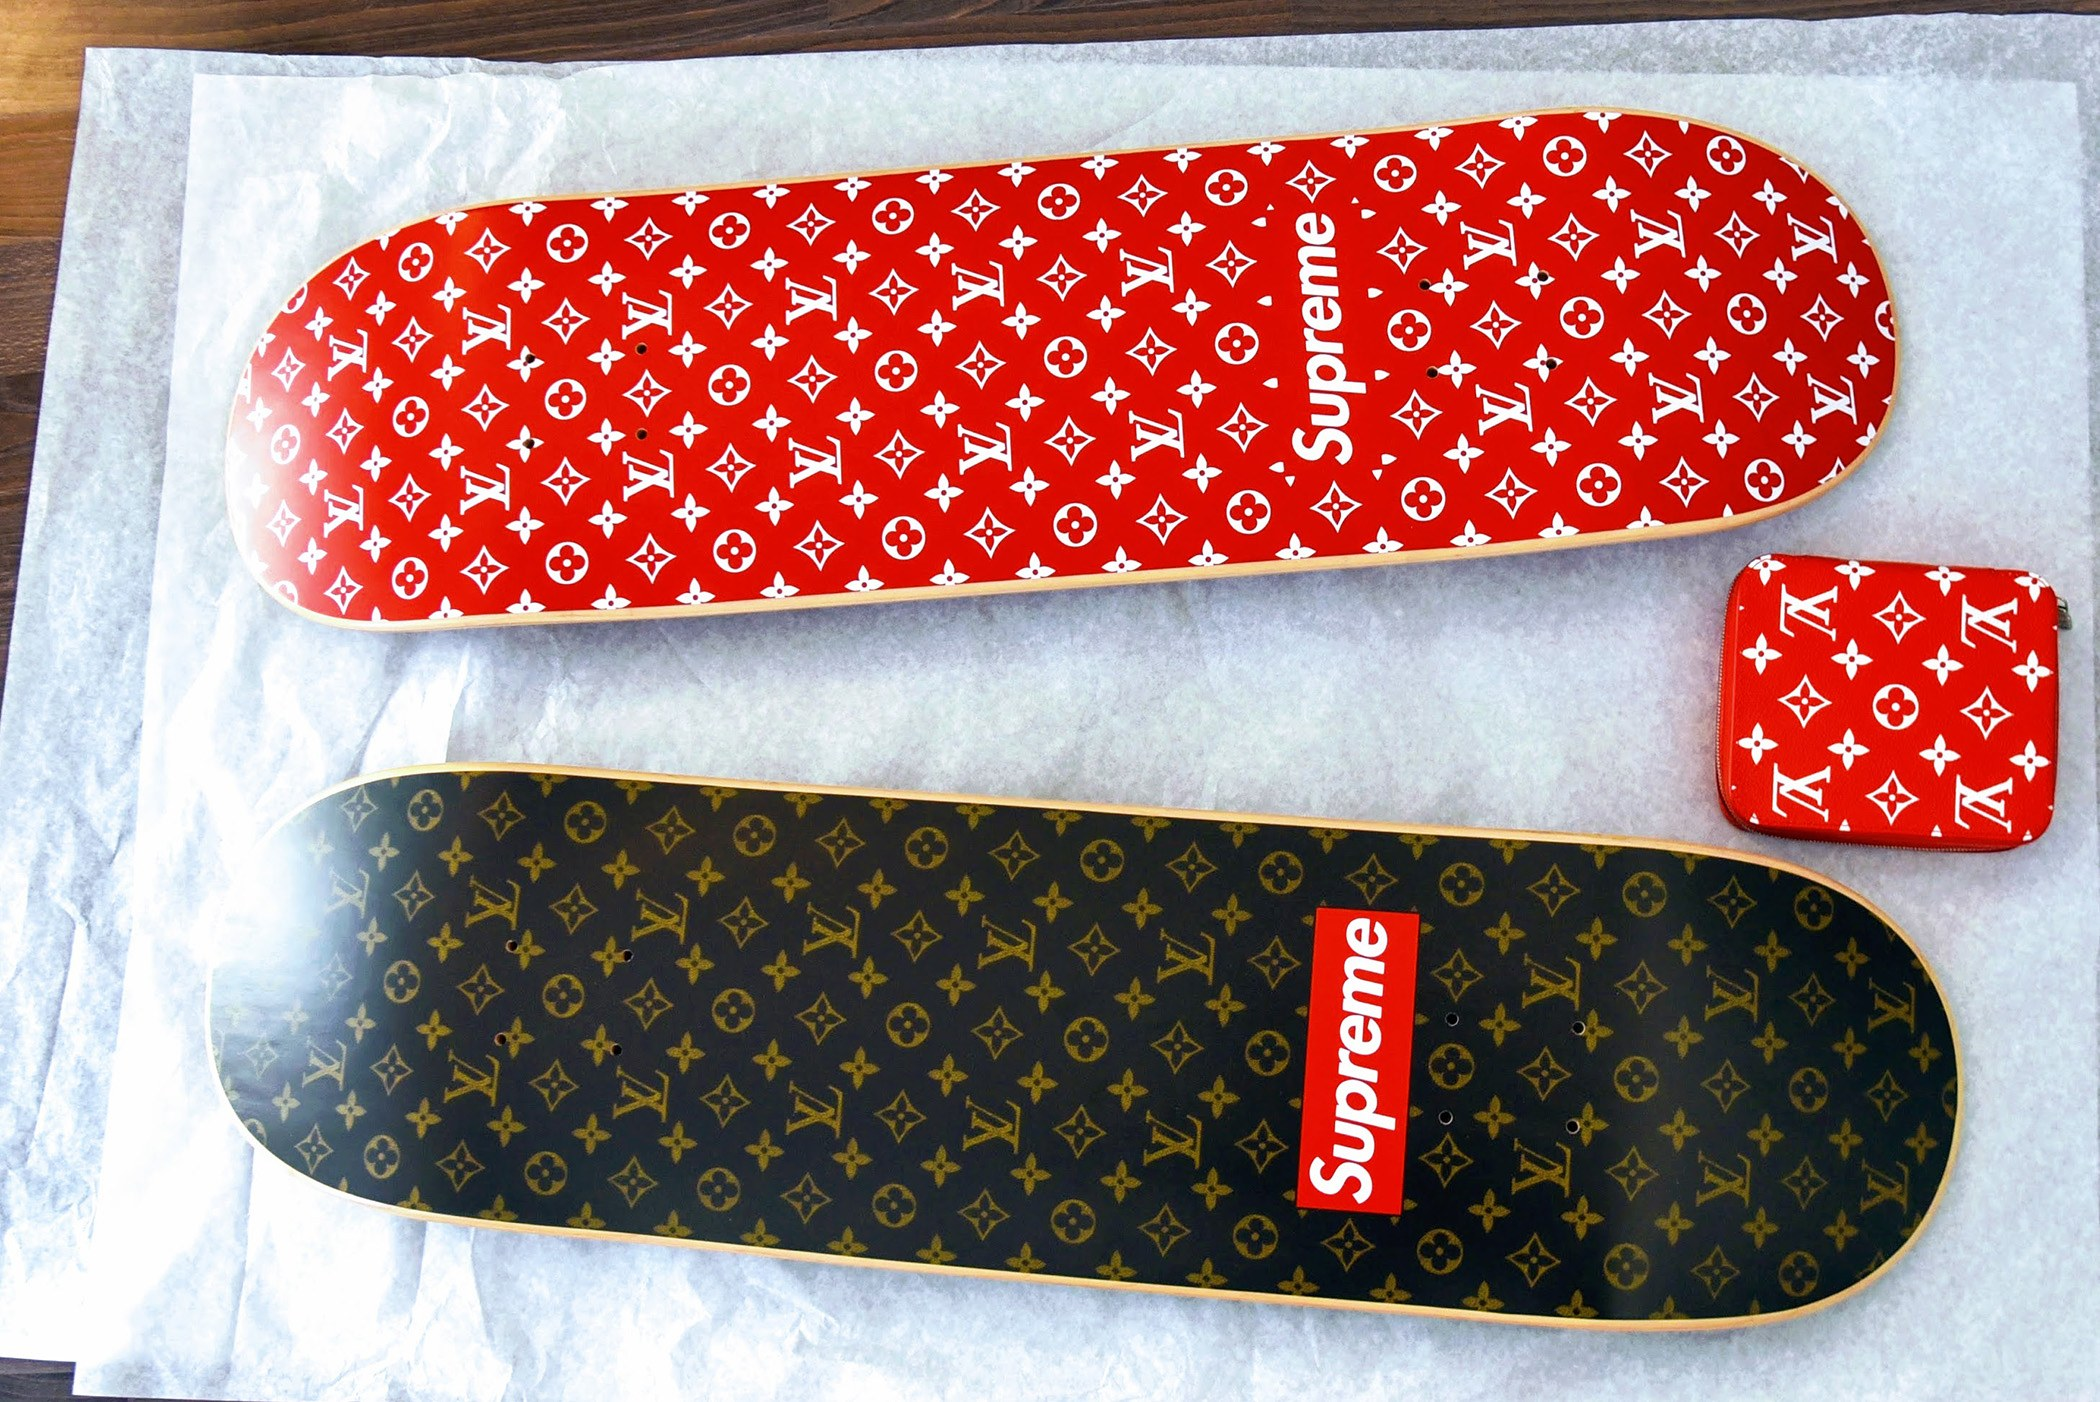 5f9a4af76c1a6 Louis Vuitton x Supreme collaboration  an enduring success or misread  experiment  – The Connector